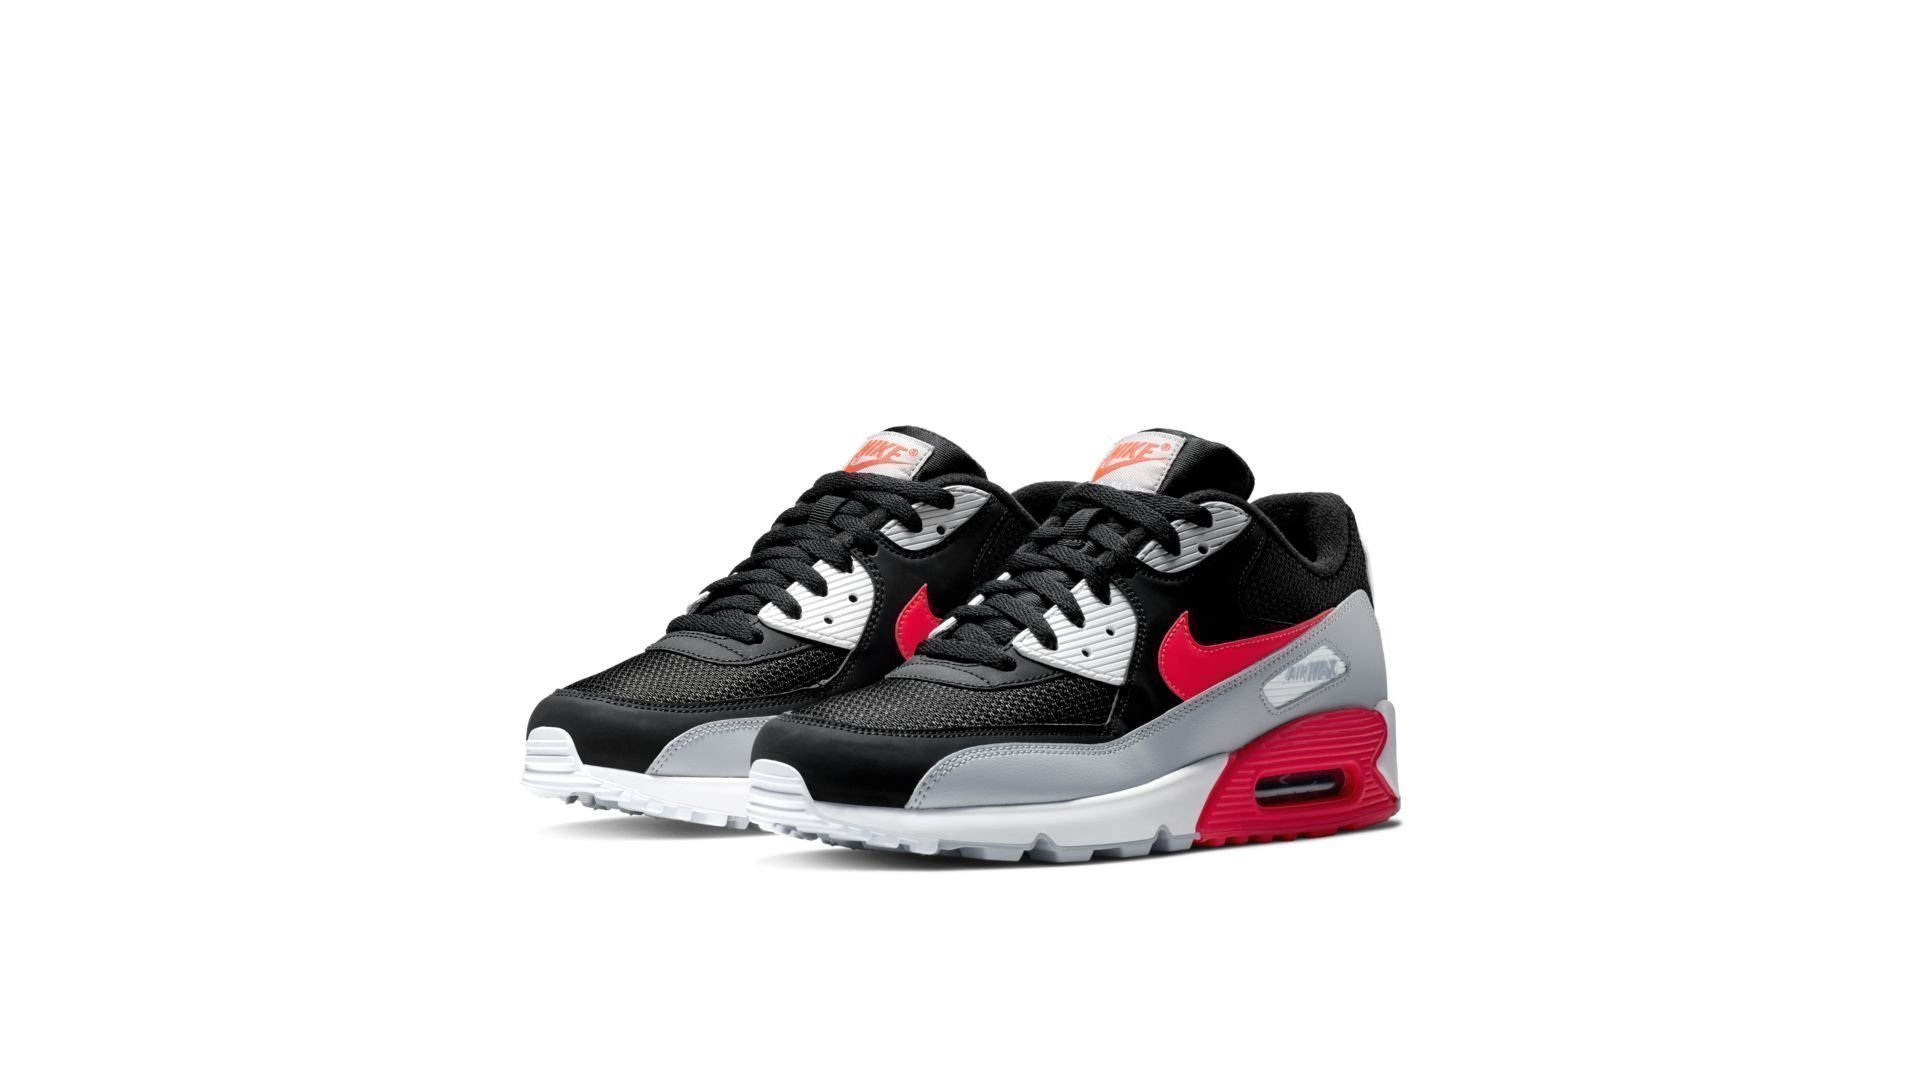 new arrival 0c284 fa276 Nike Air Max 90 Essential  Infrared Remix  (AJ1285-012)